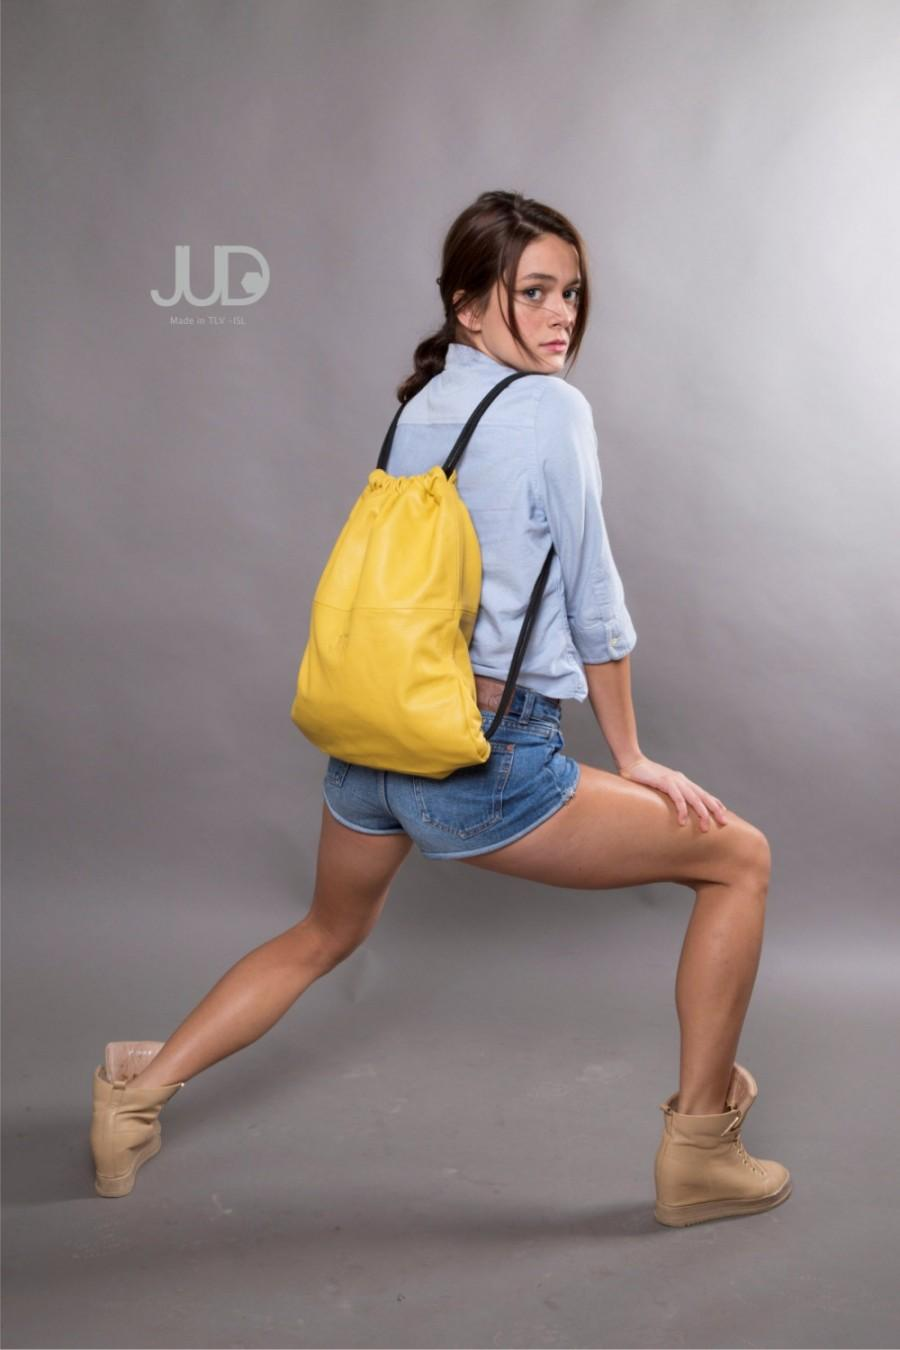 Wedding - Yellow leather backpack purse - multi leather back bag SALE women leather bag - backpacks - leather shoulder bag woman bags leather satchel